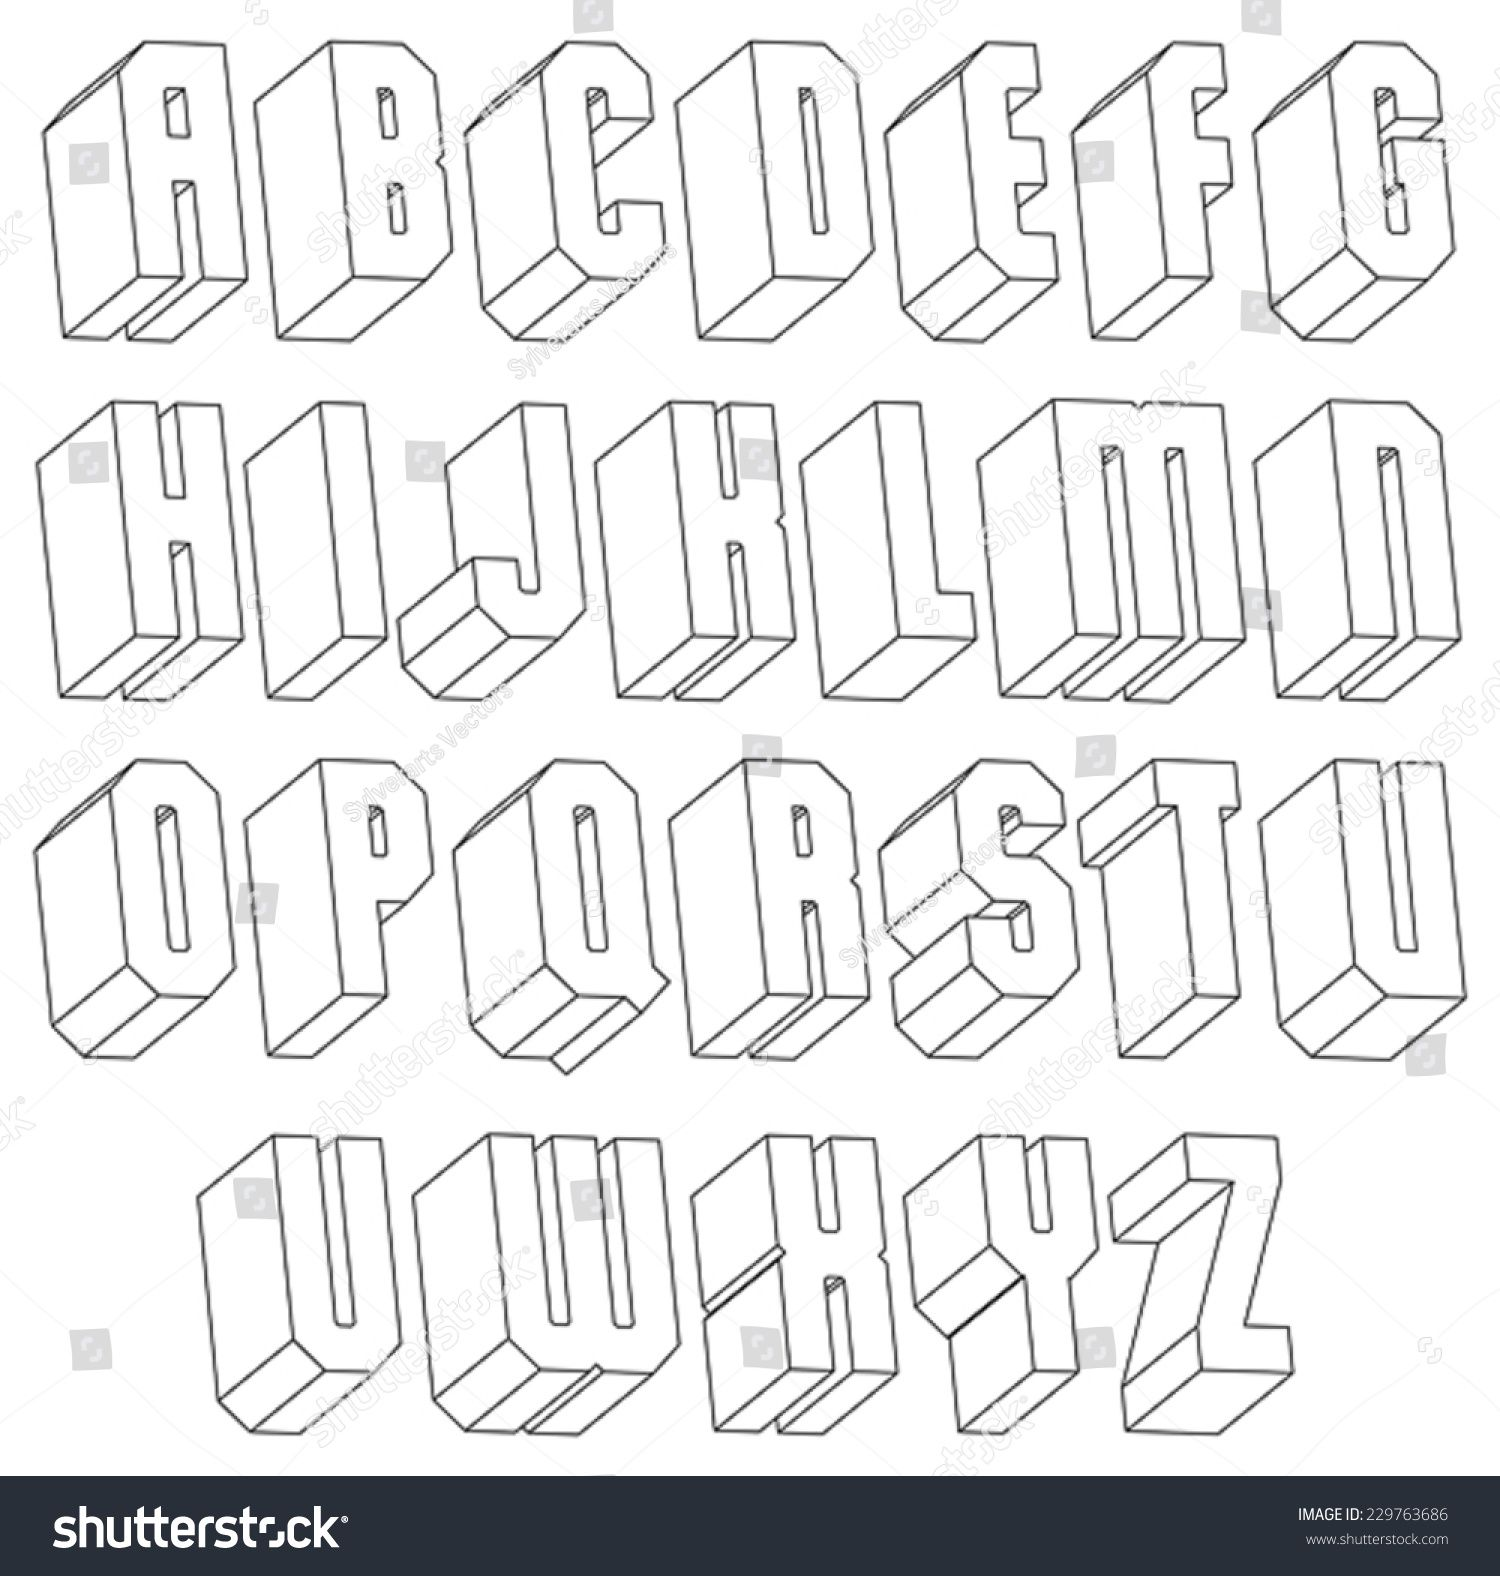 3d Schrift Abc Geometric Black And White 3d Font Made With Thin Lines Single